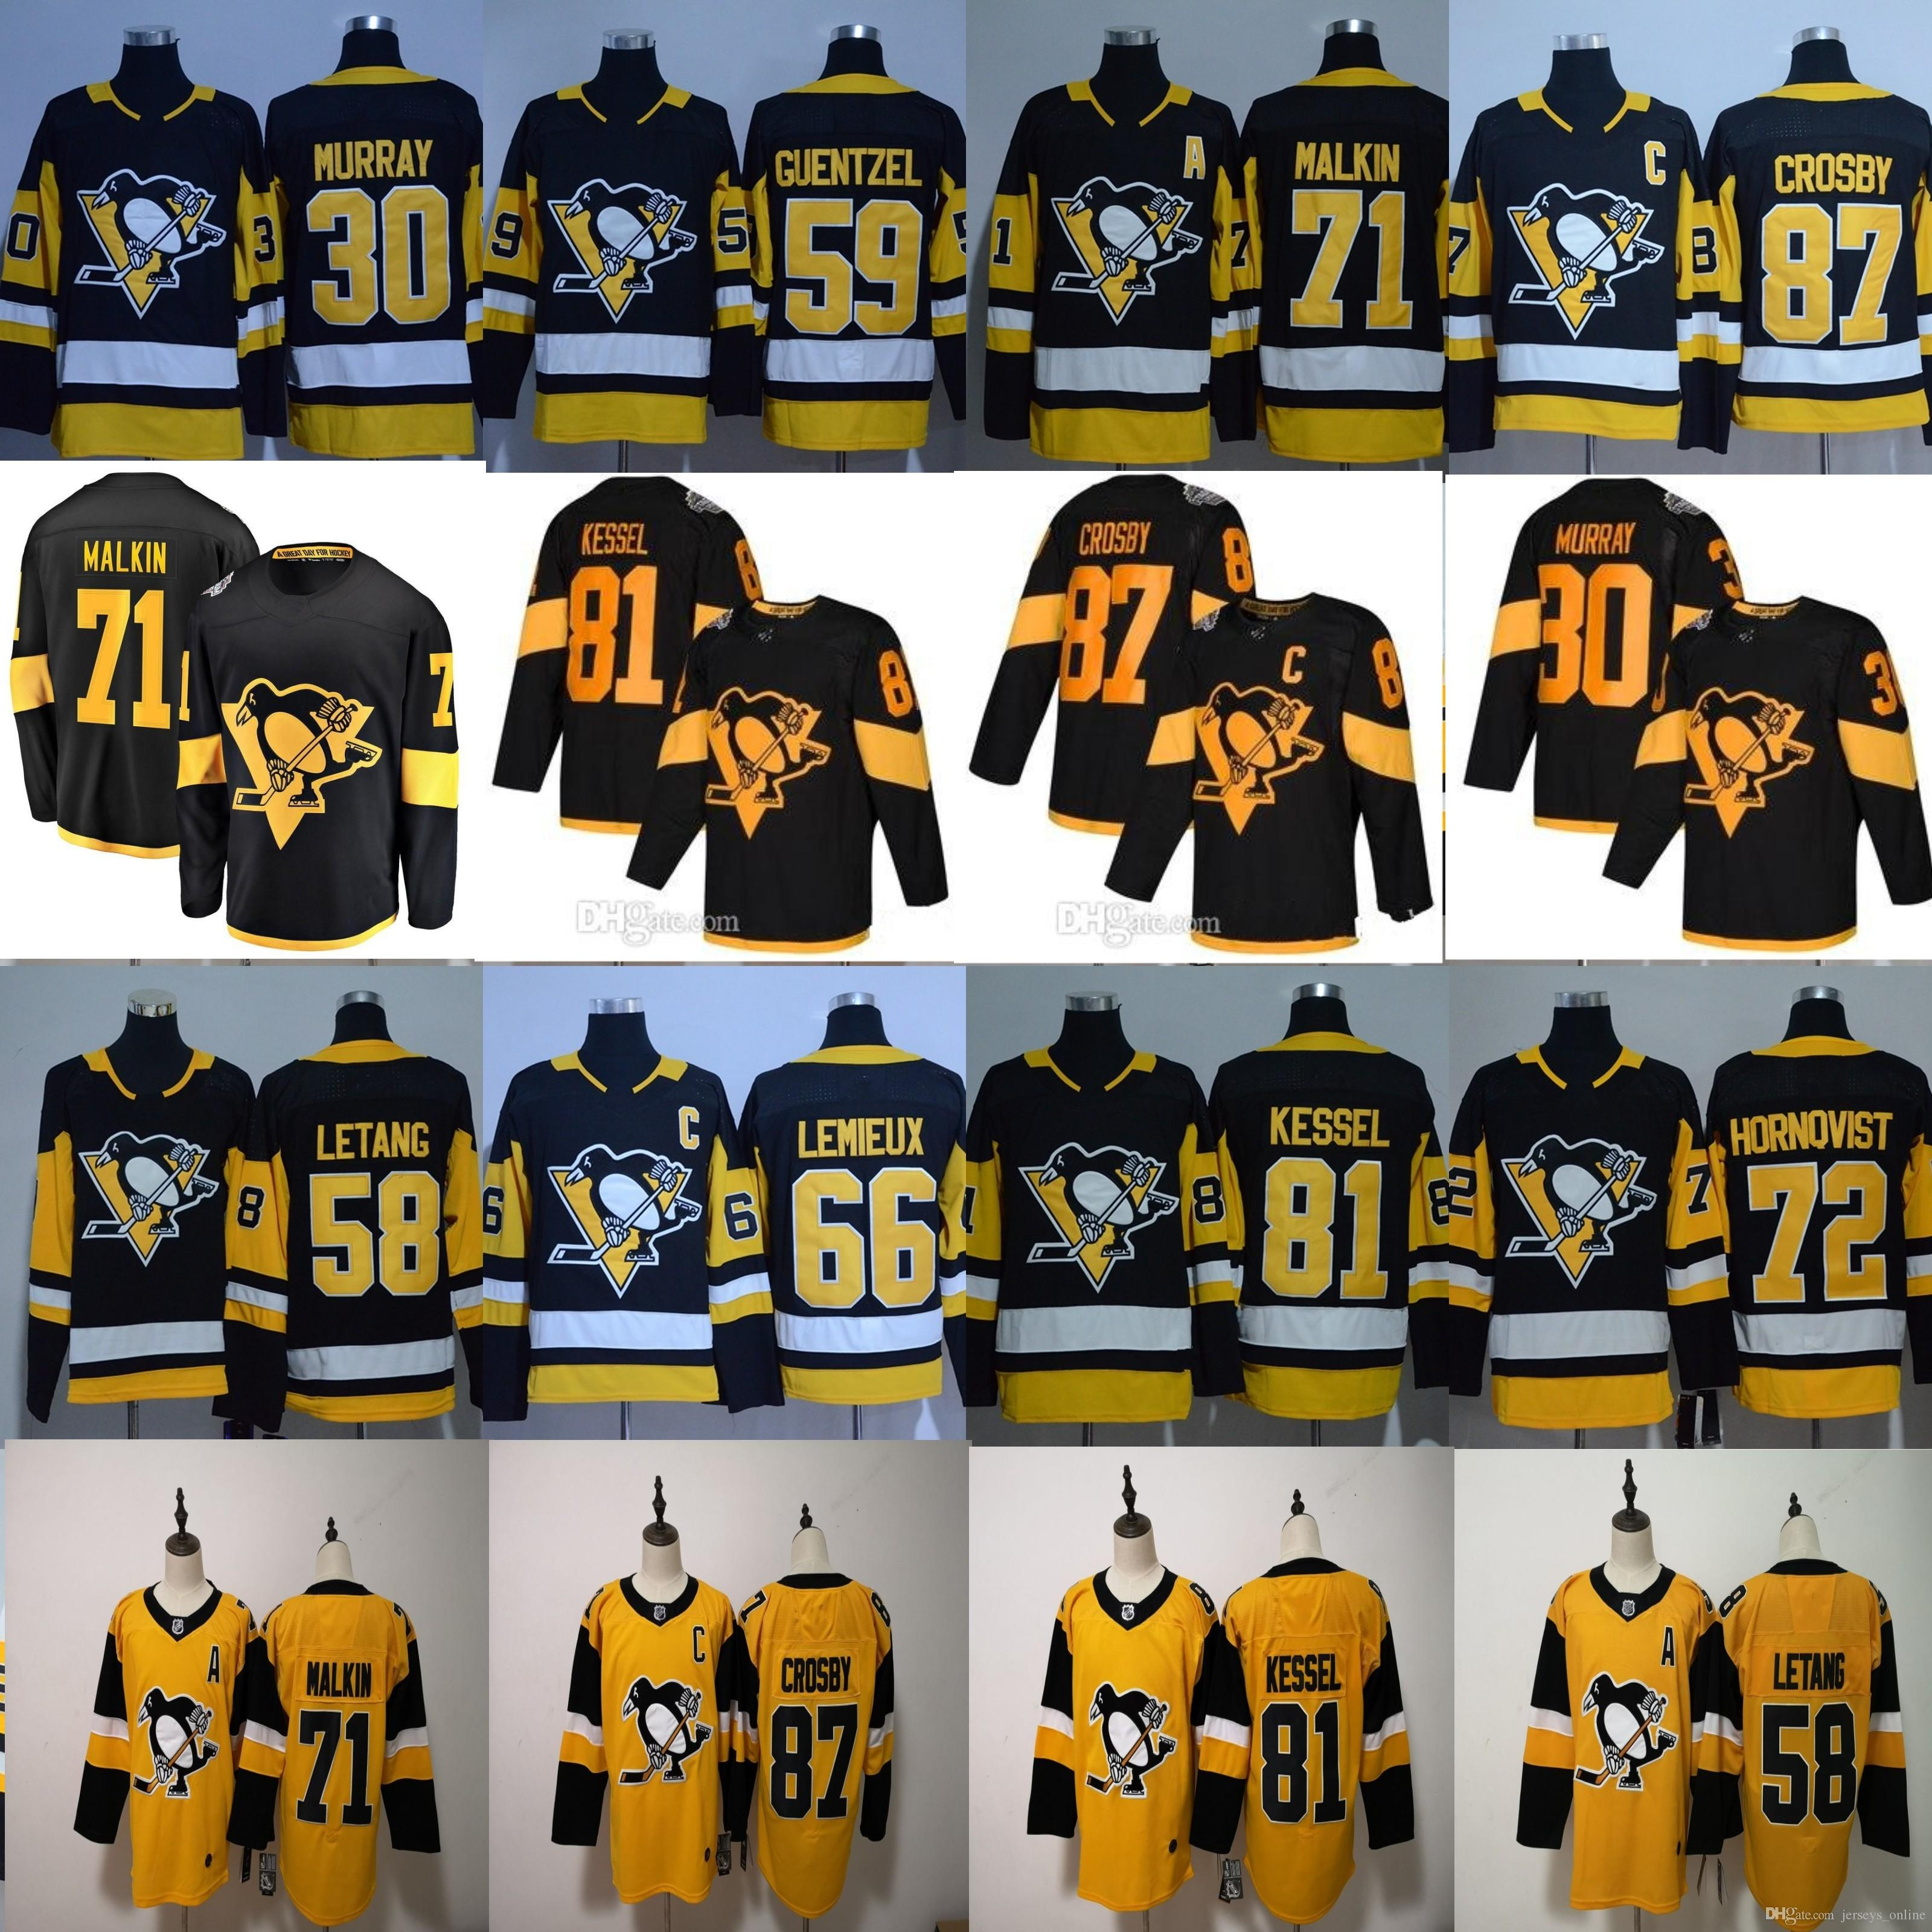 2019 2019 Stadium Series MEN Pittsburgh Penguins Sidney Crosby Evgeni  Malkin KRISTOPHER LETANG Mario Lemieux Jake Guentzel Phil Kessel Jerseys  From ... ad76e2fe2